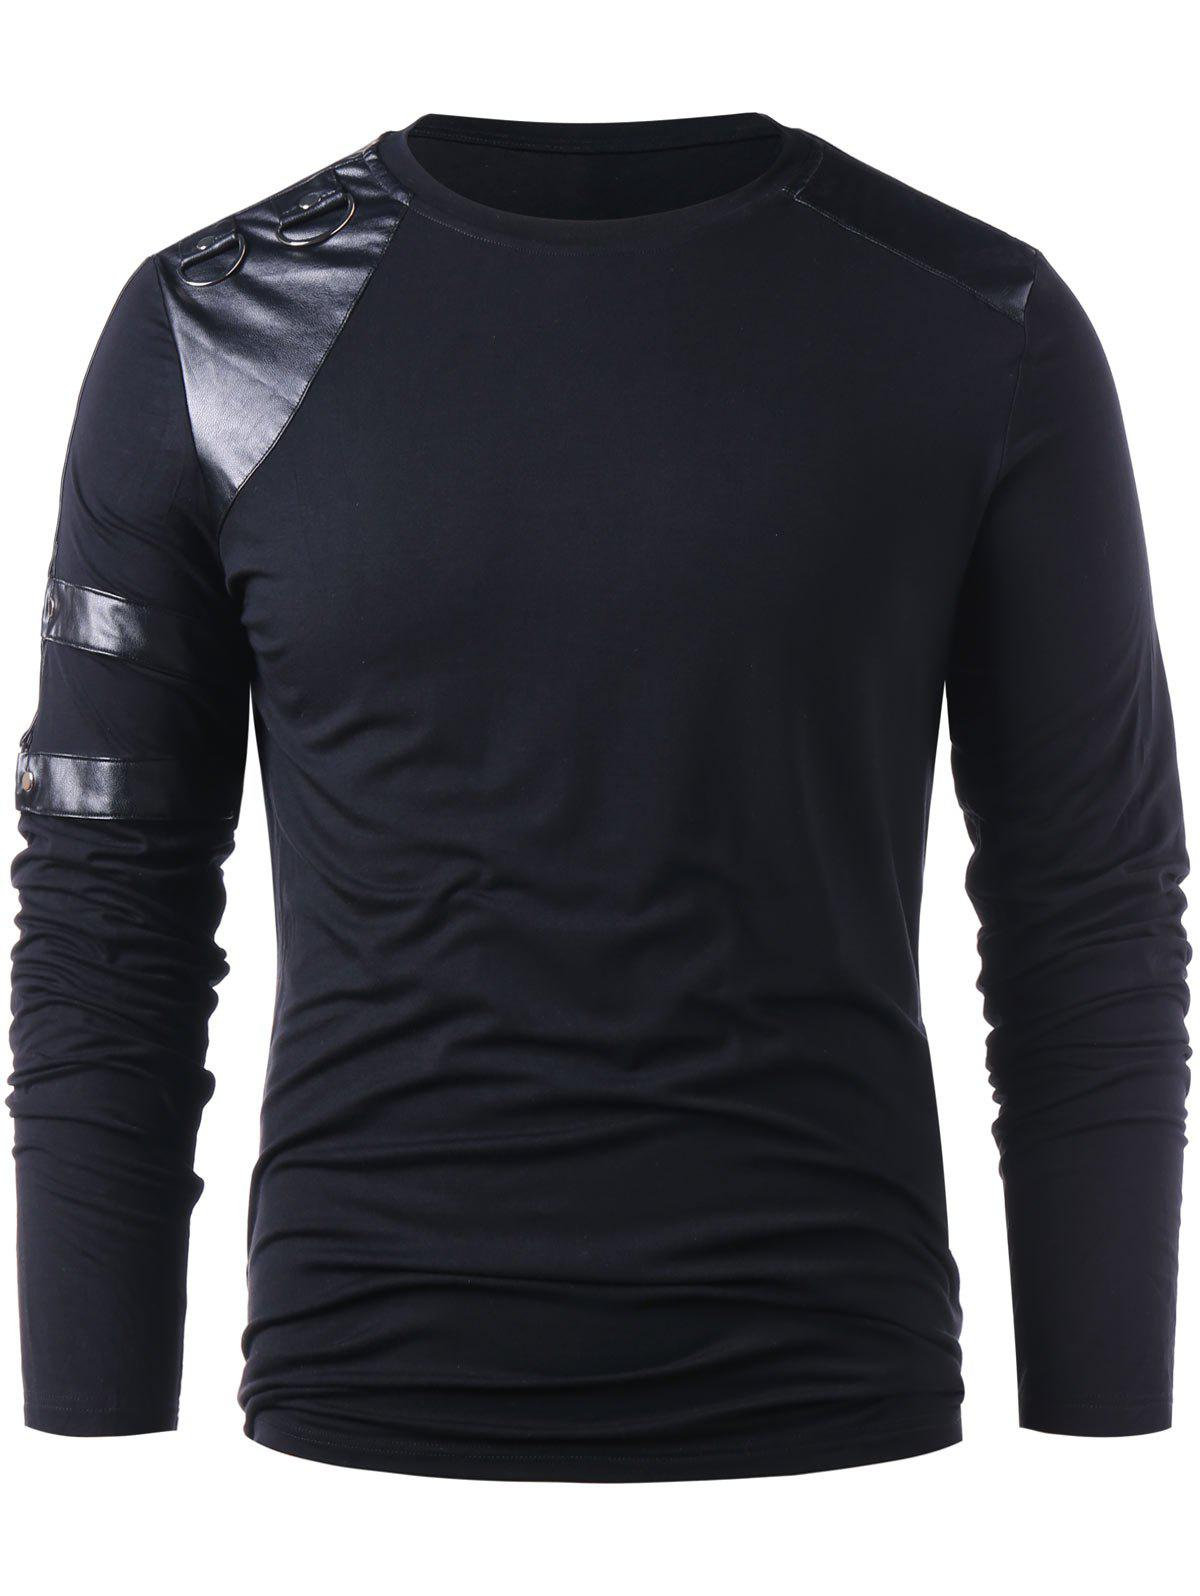 Discount PU Leather Panel Long Sleeve T-shirt